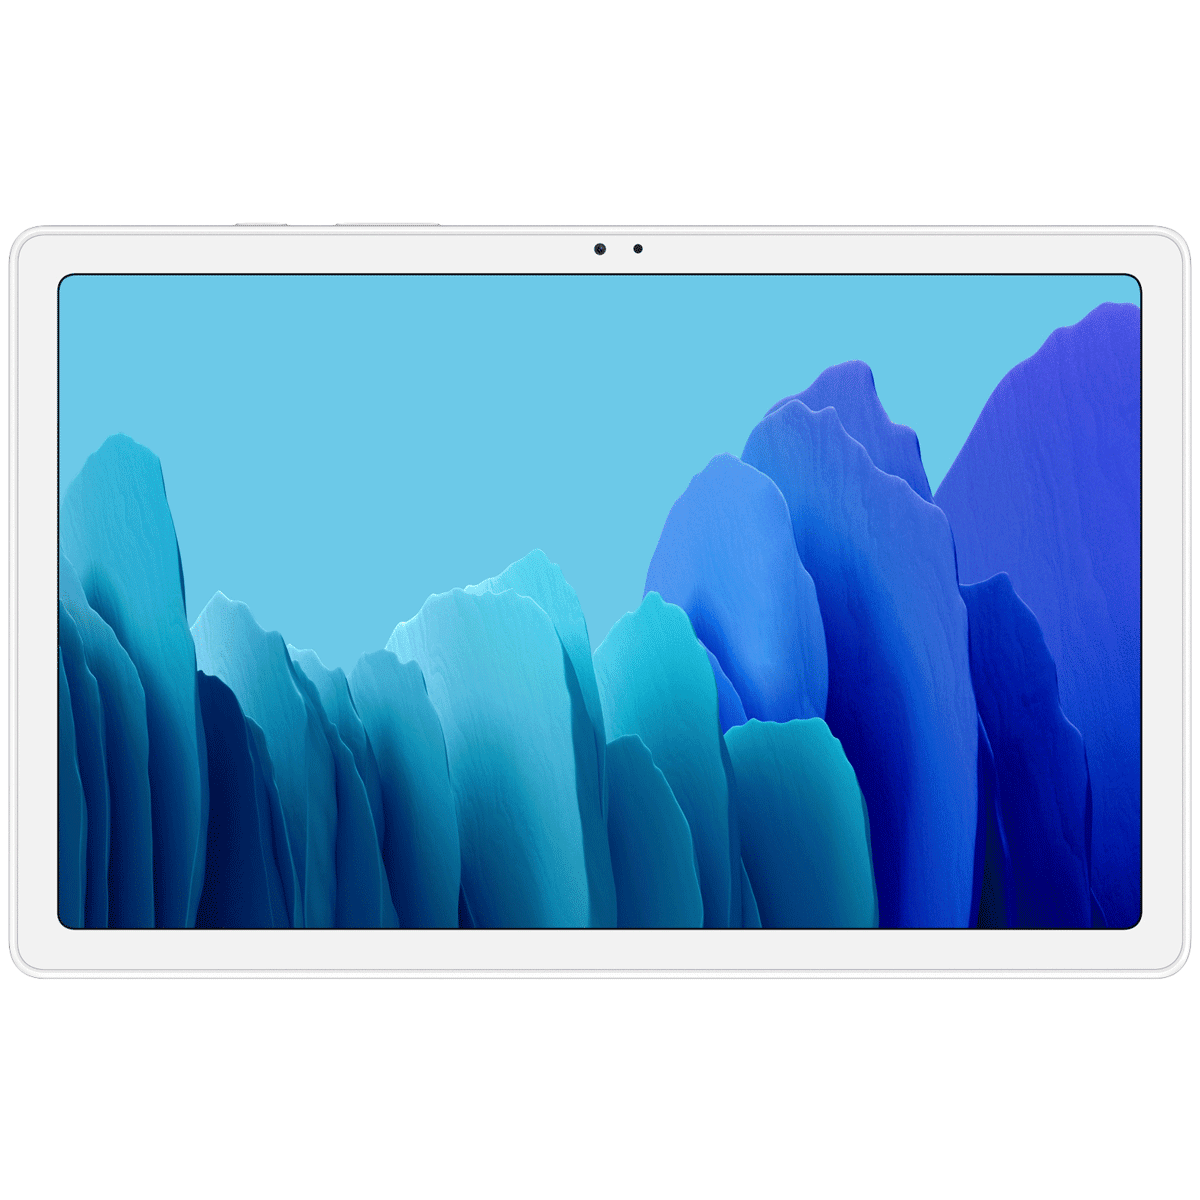 Samsung Galaxy Tab A7 WiFi + 4G Android Tablet (Android 10, Qualcomm Snapdragon 662, 26.41 cm (10.4 Inch), 3GB RAM, 32GB ROM, SM-T505NZSPINU, Silver)